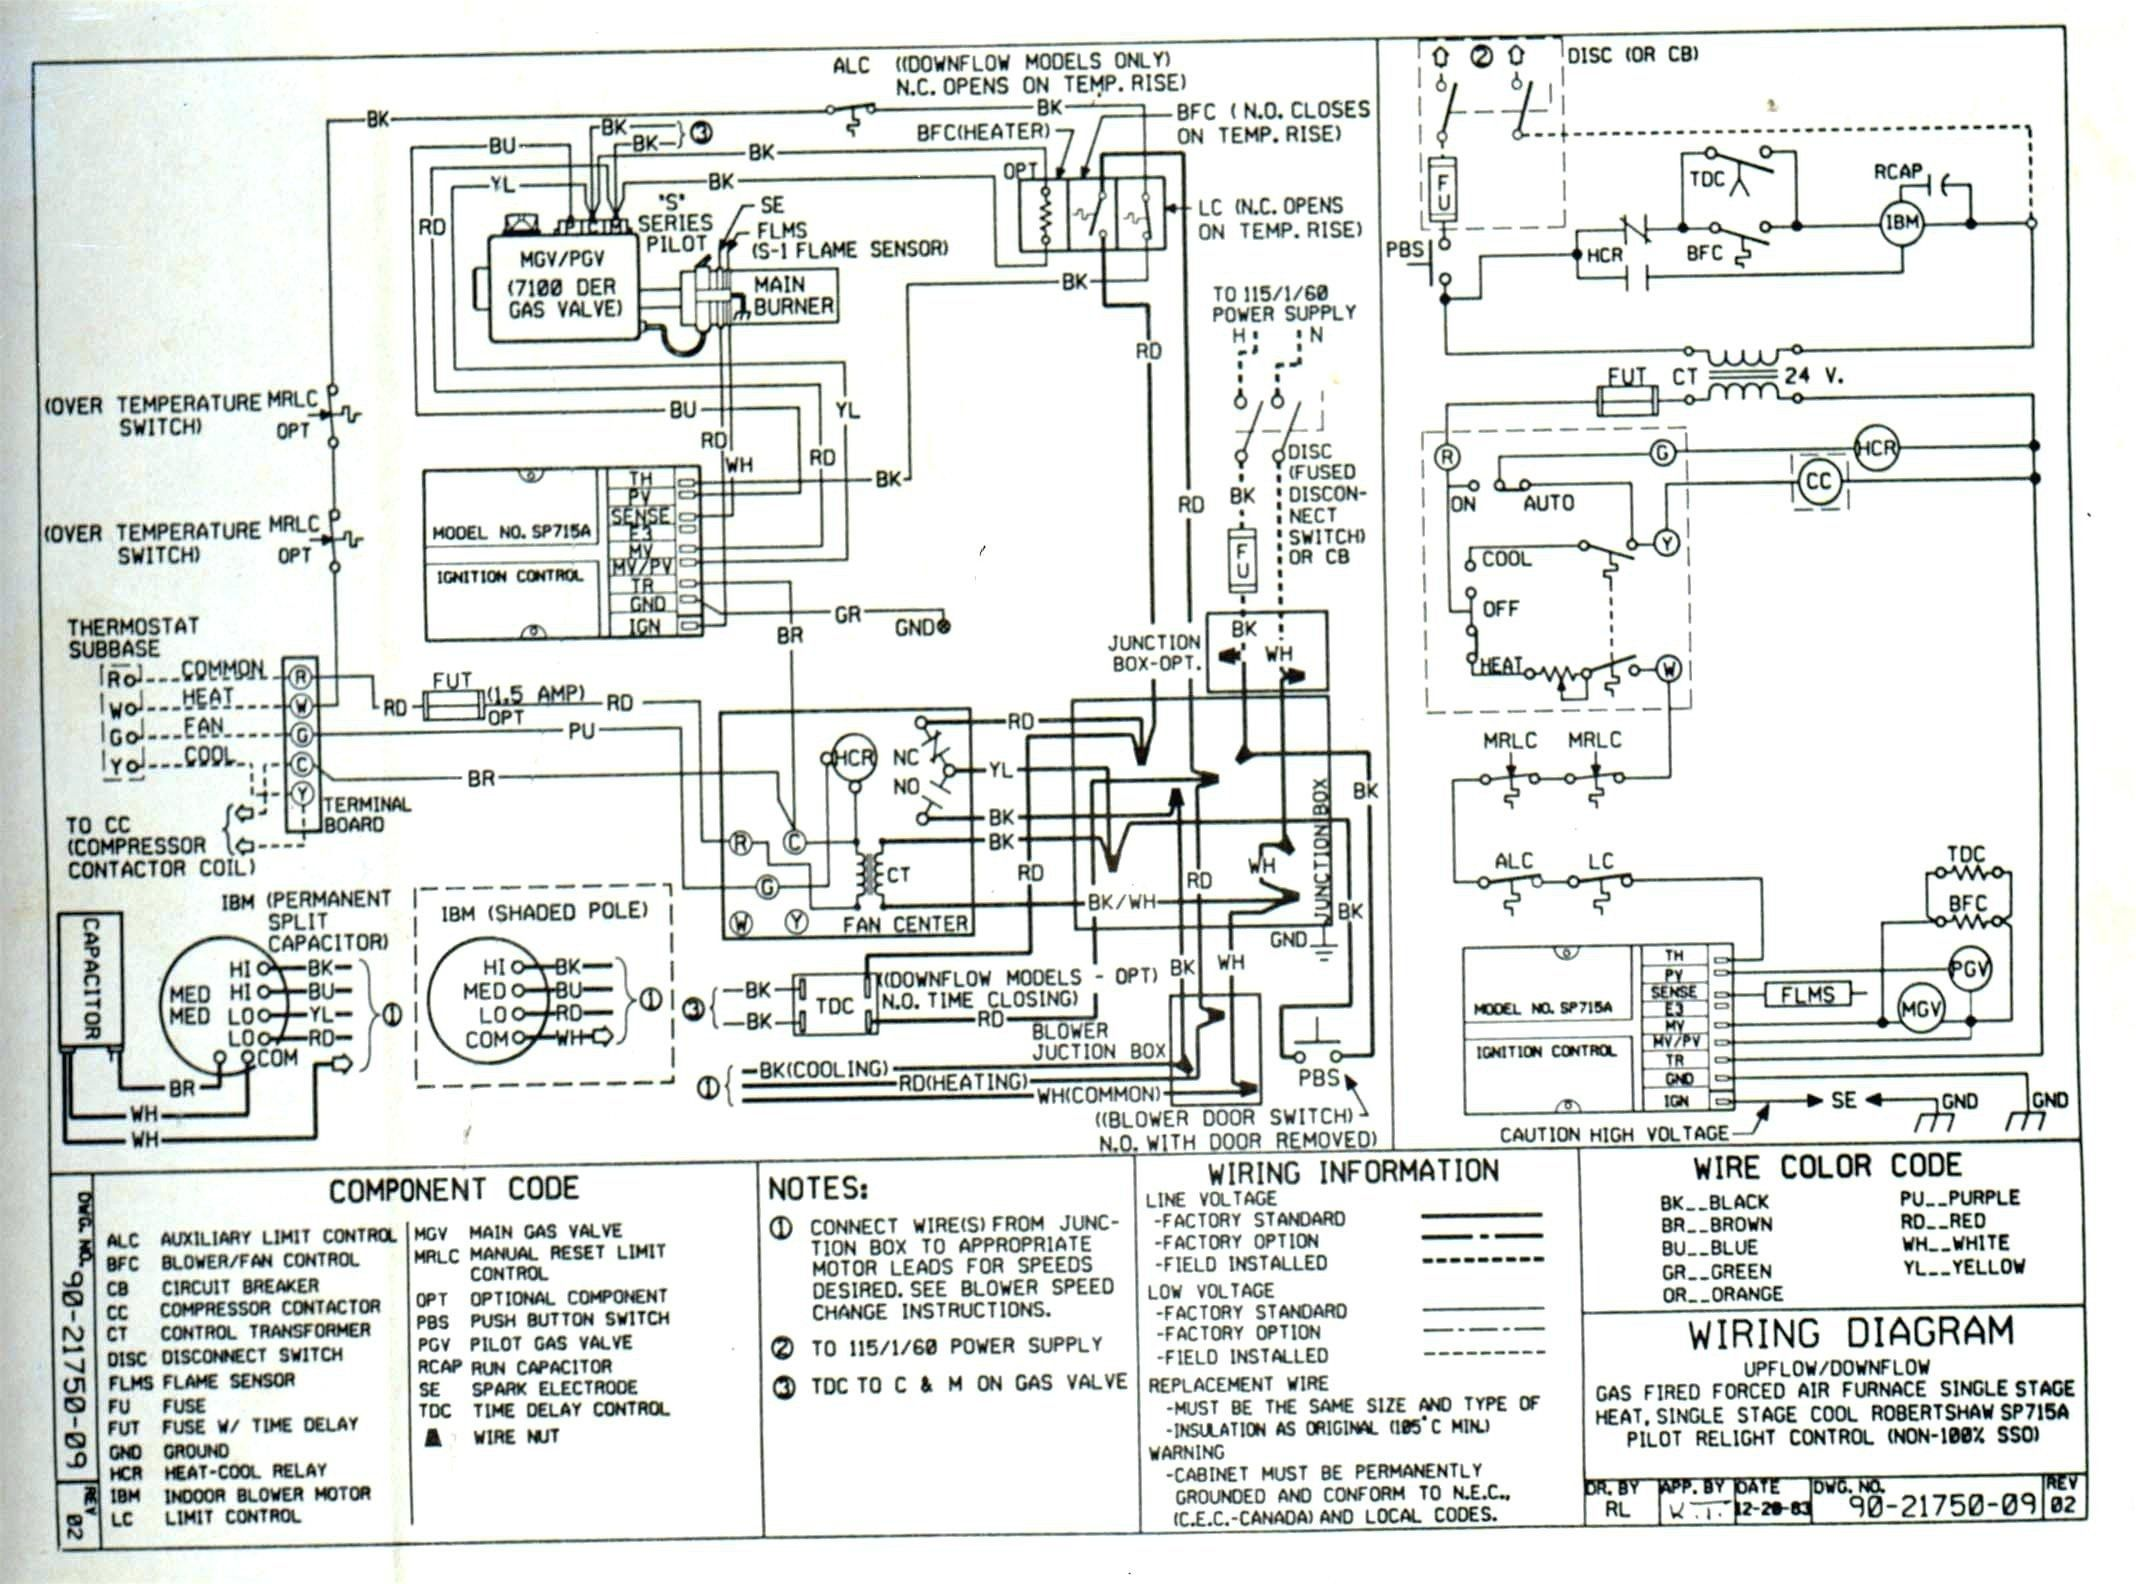 trane xr13 wiring diagram wiring diagram trane xl14i trane xl13i wiring diagram #4